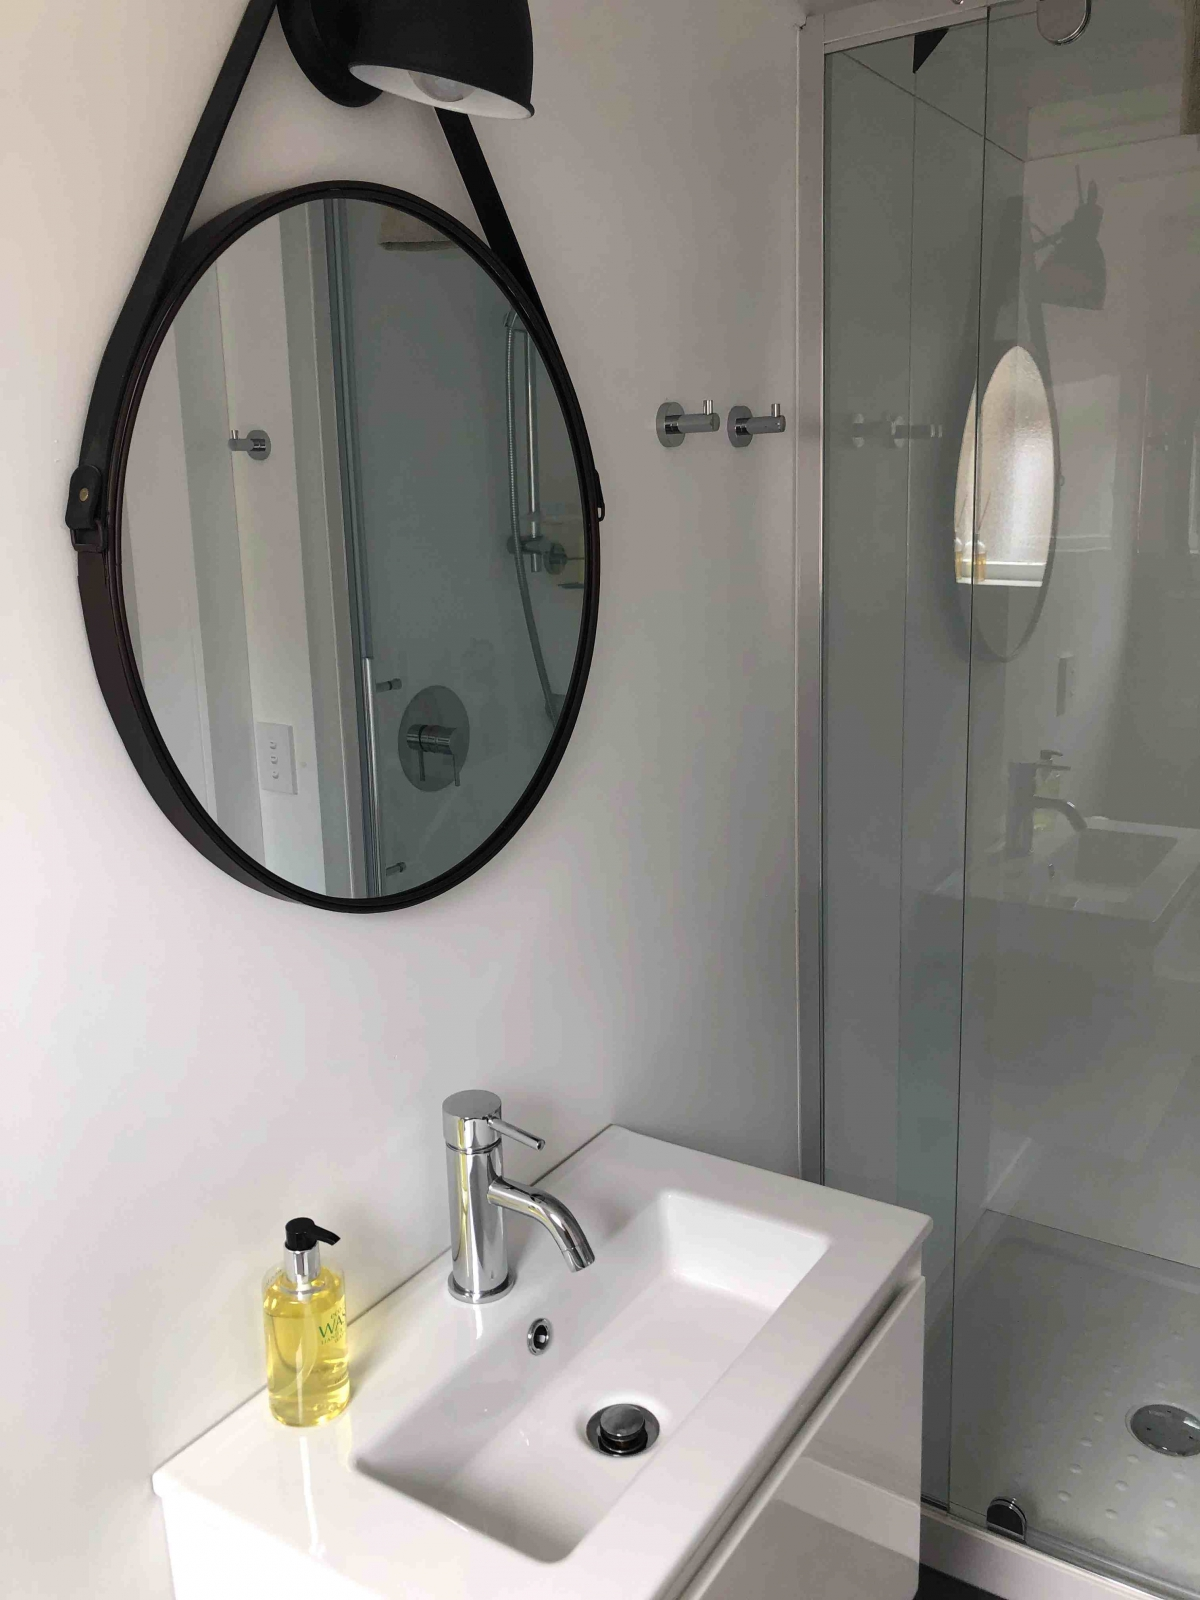 Photo of property: Ensuite bathroom with shower